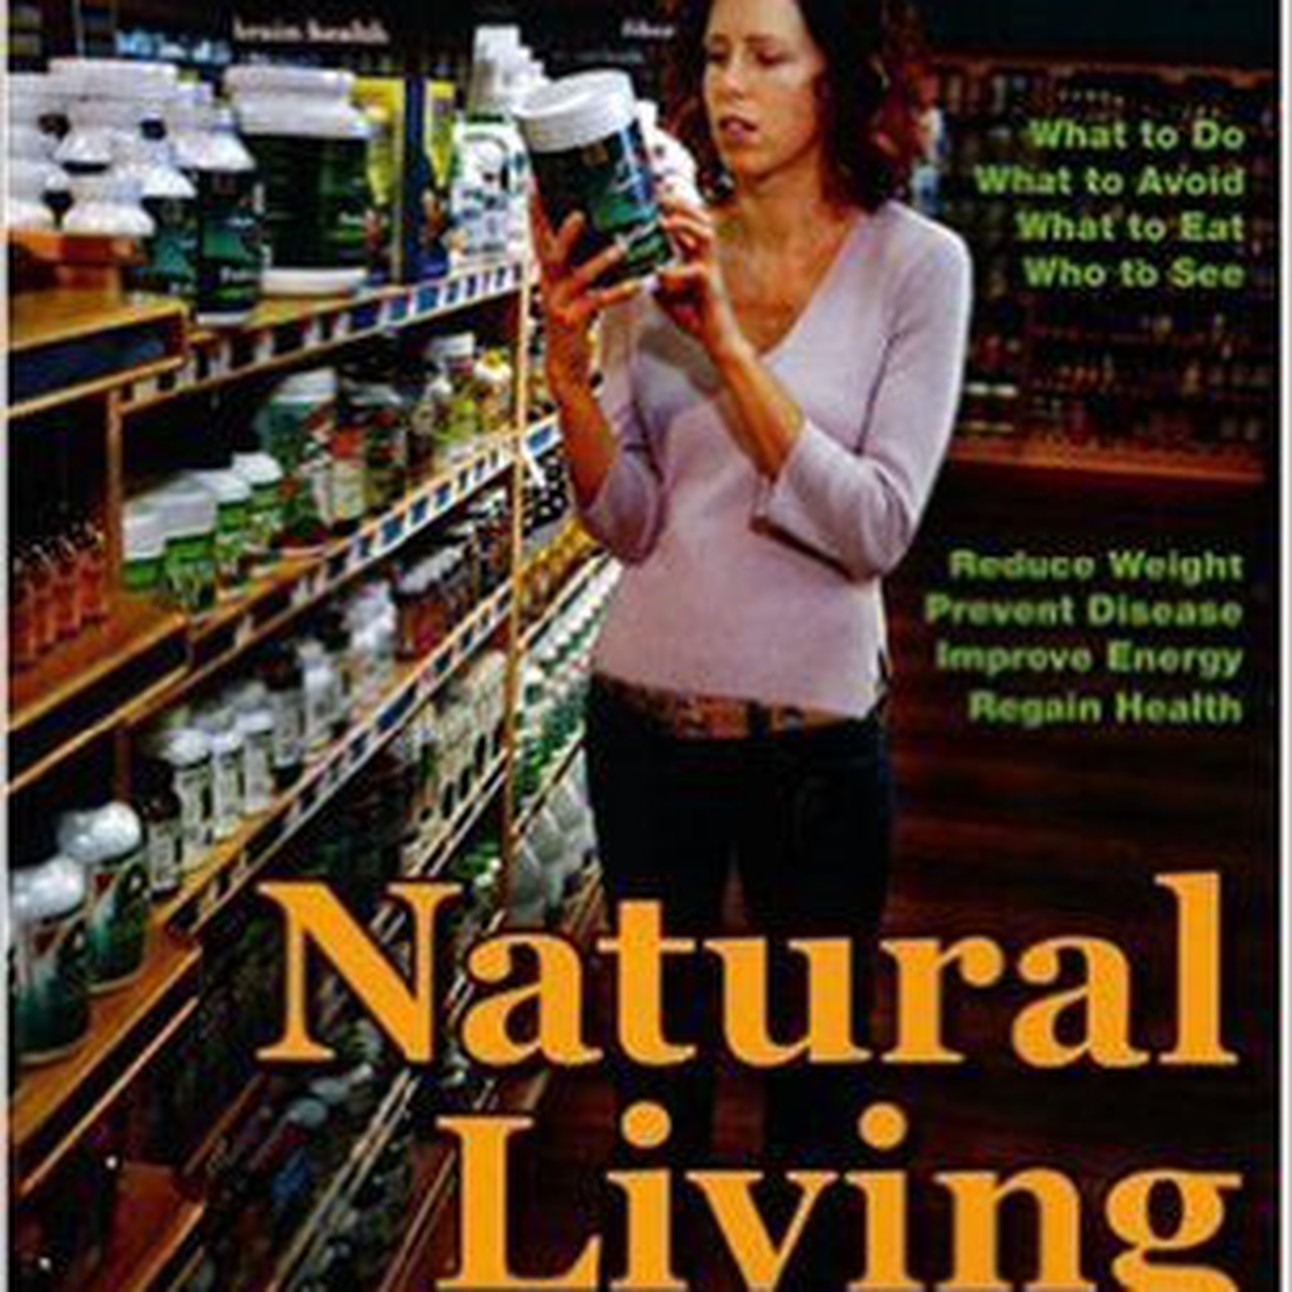 Zoe on the beginners guide to natural living & natural health.